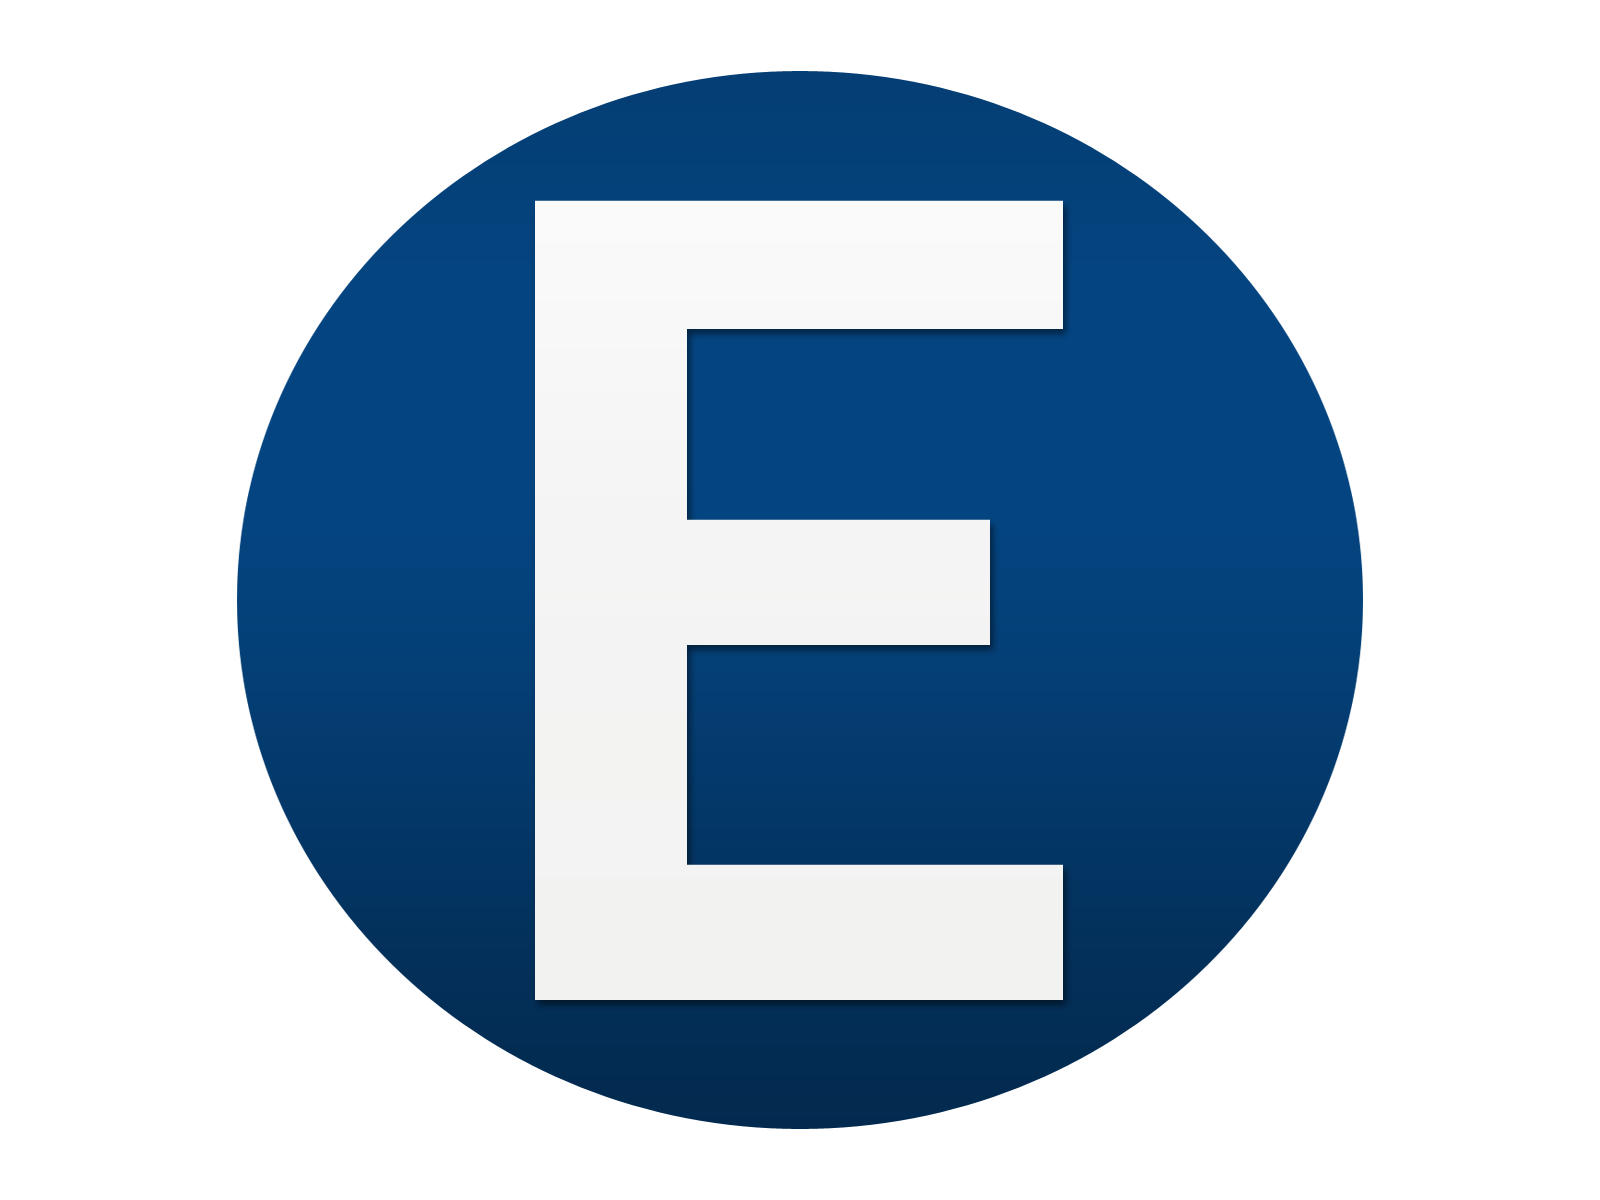 1600x1200 Blue White Letter E Logo Design Png Free To Use Images, E Logo